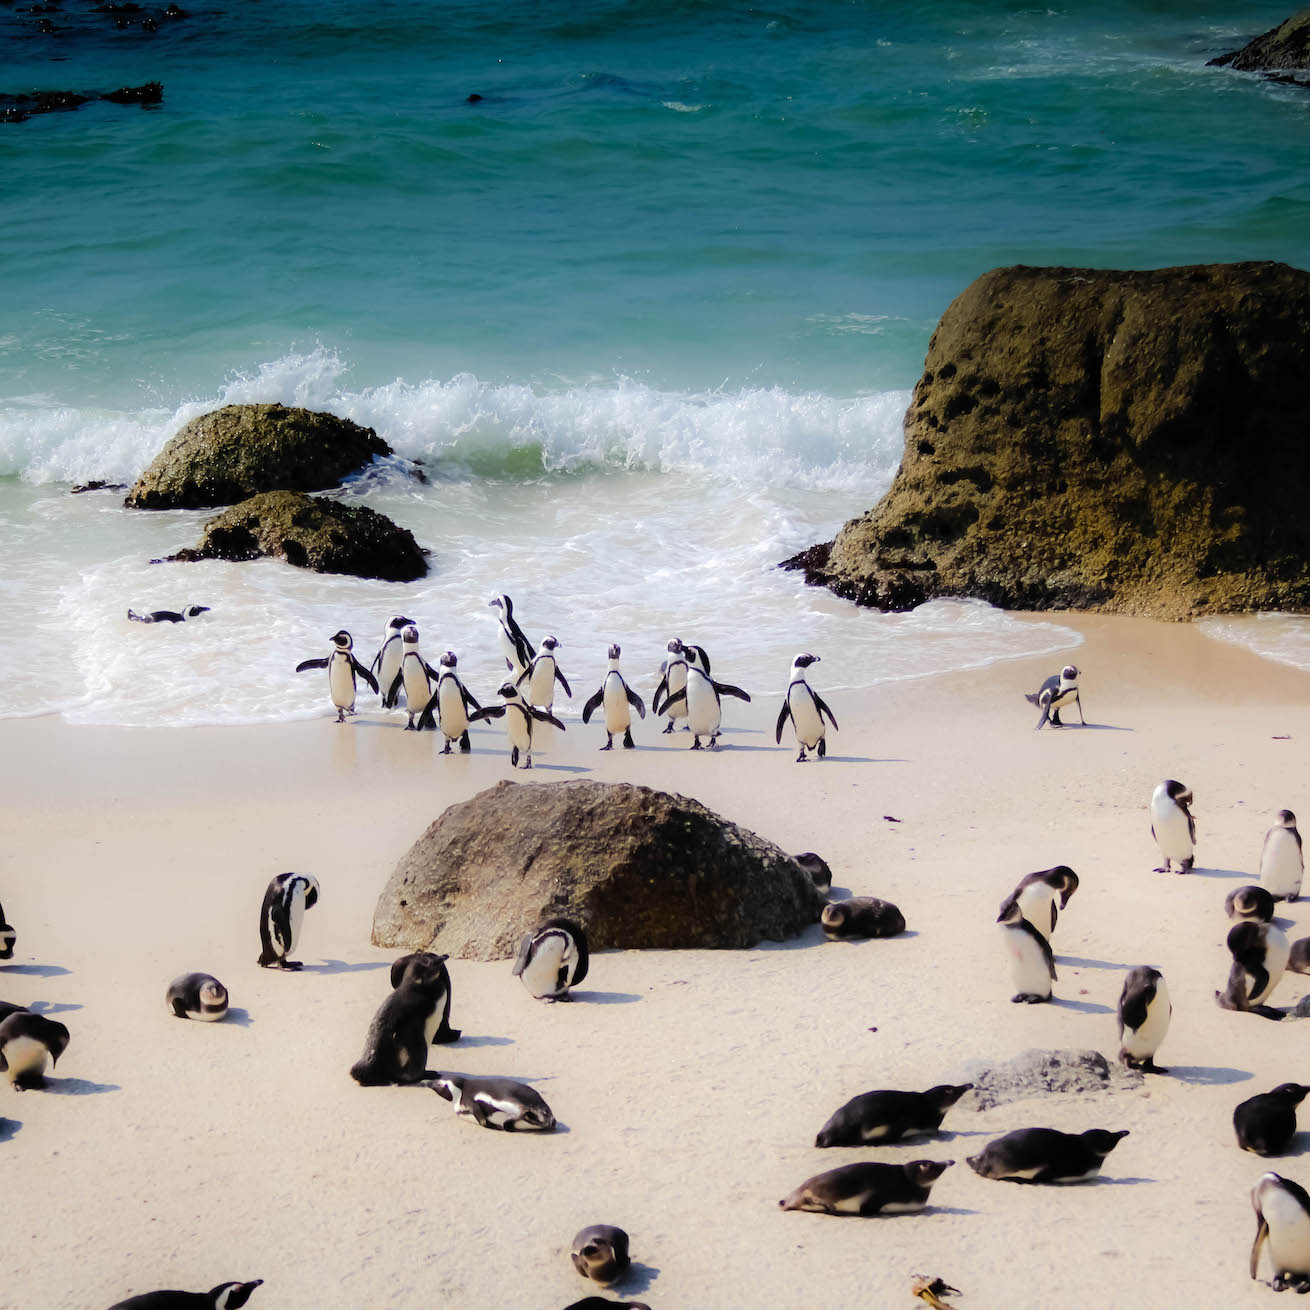 A group of African Penguins come out of the water at Boulders Penguin Colony.